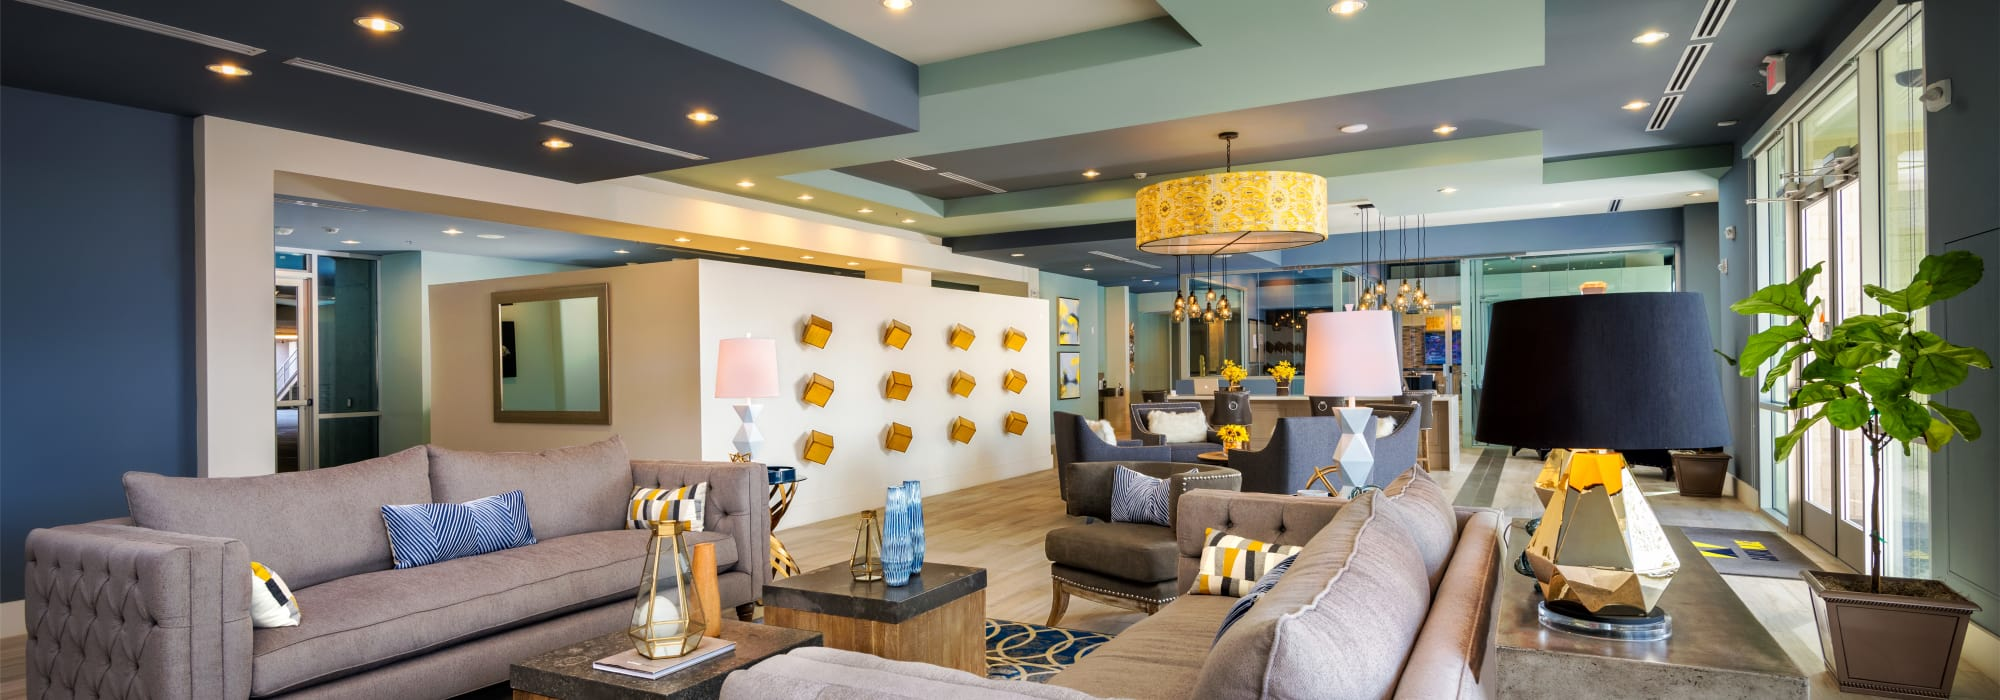 Comfortable seating and contemporary decor in the resident clubhouse at Capital Place in Phoenix, Arizona